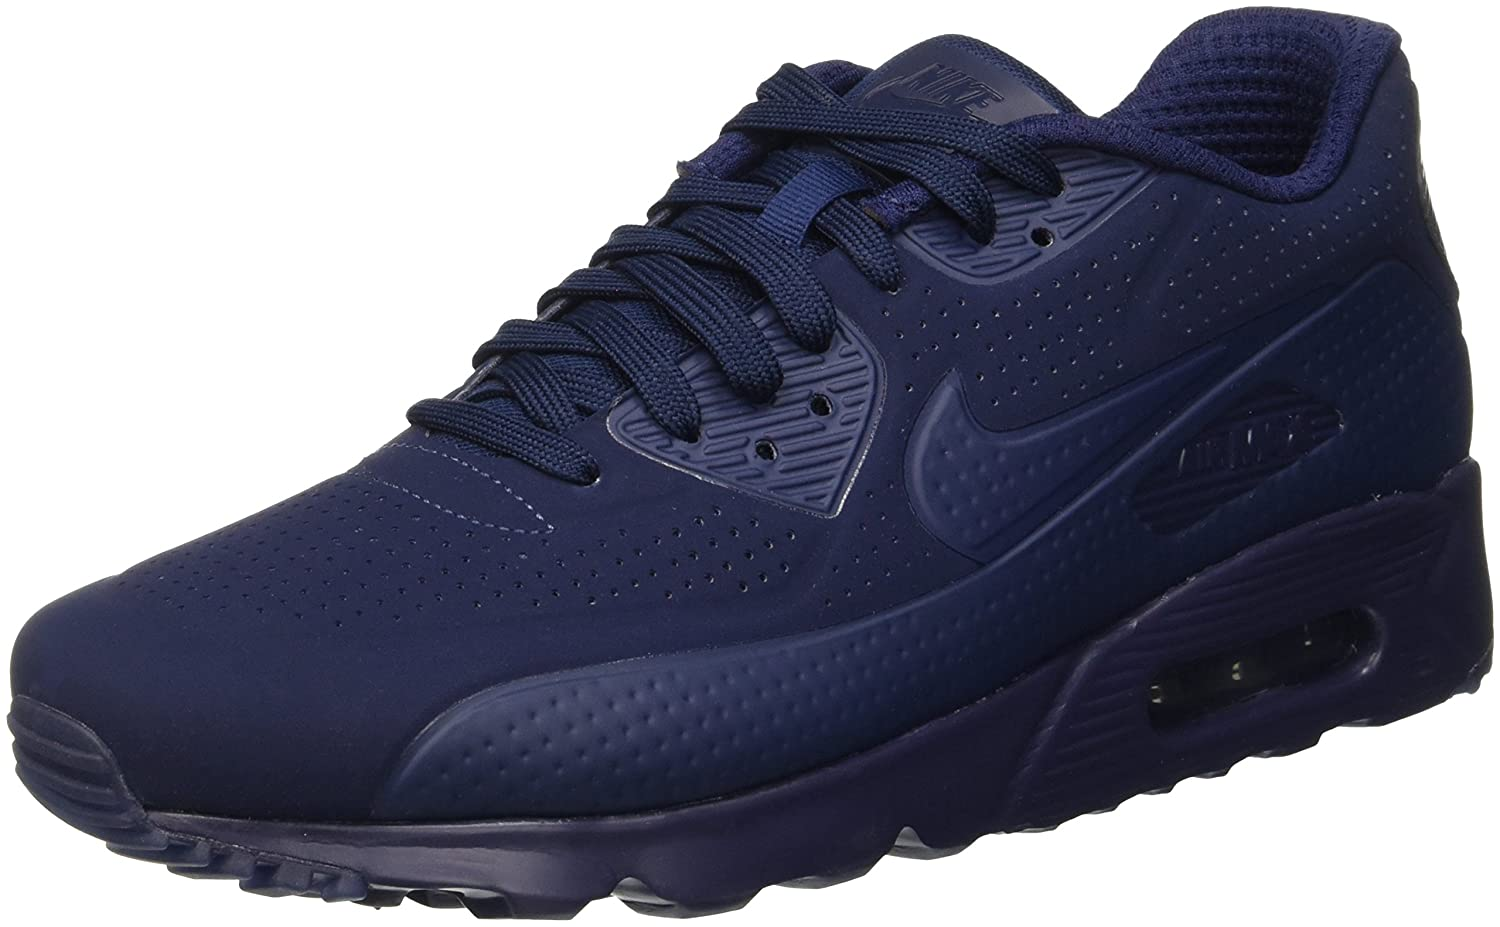 lowest price 8a5dd f4c12 Amazon.com  Nike Air Max 90 Ultra Moire Mens Shoes Midnight NavyWhite  819477-400 (10.5 D(M) US)  Running